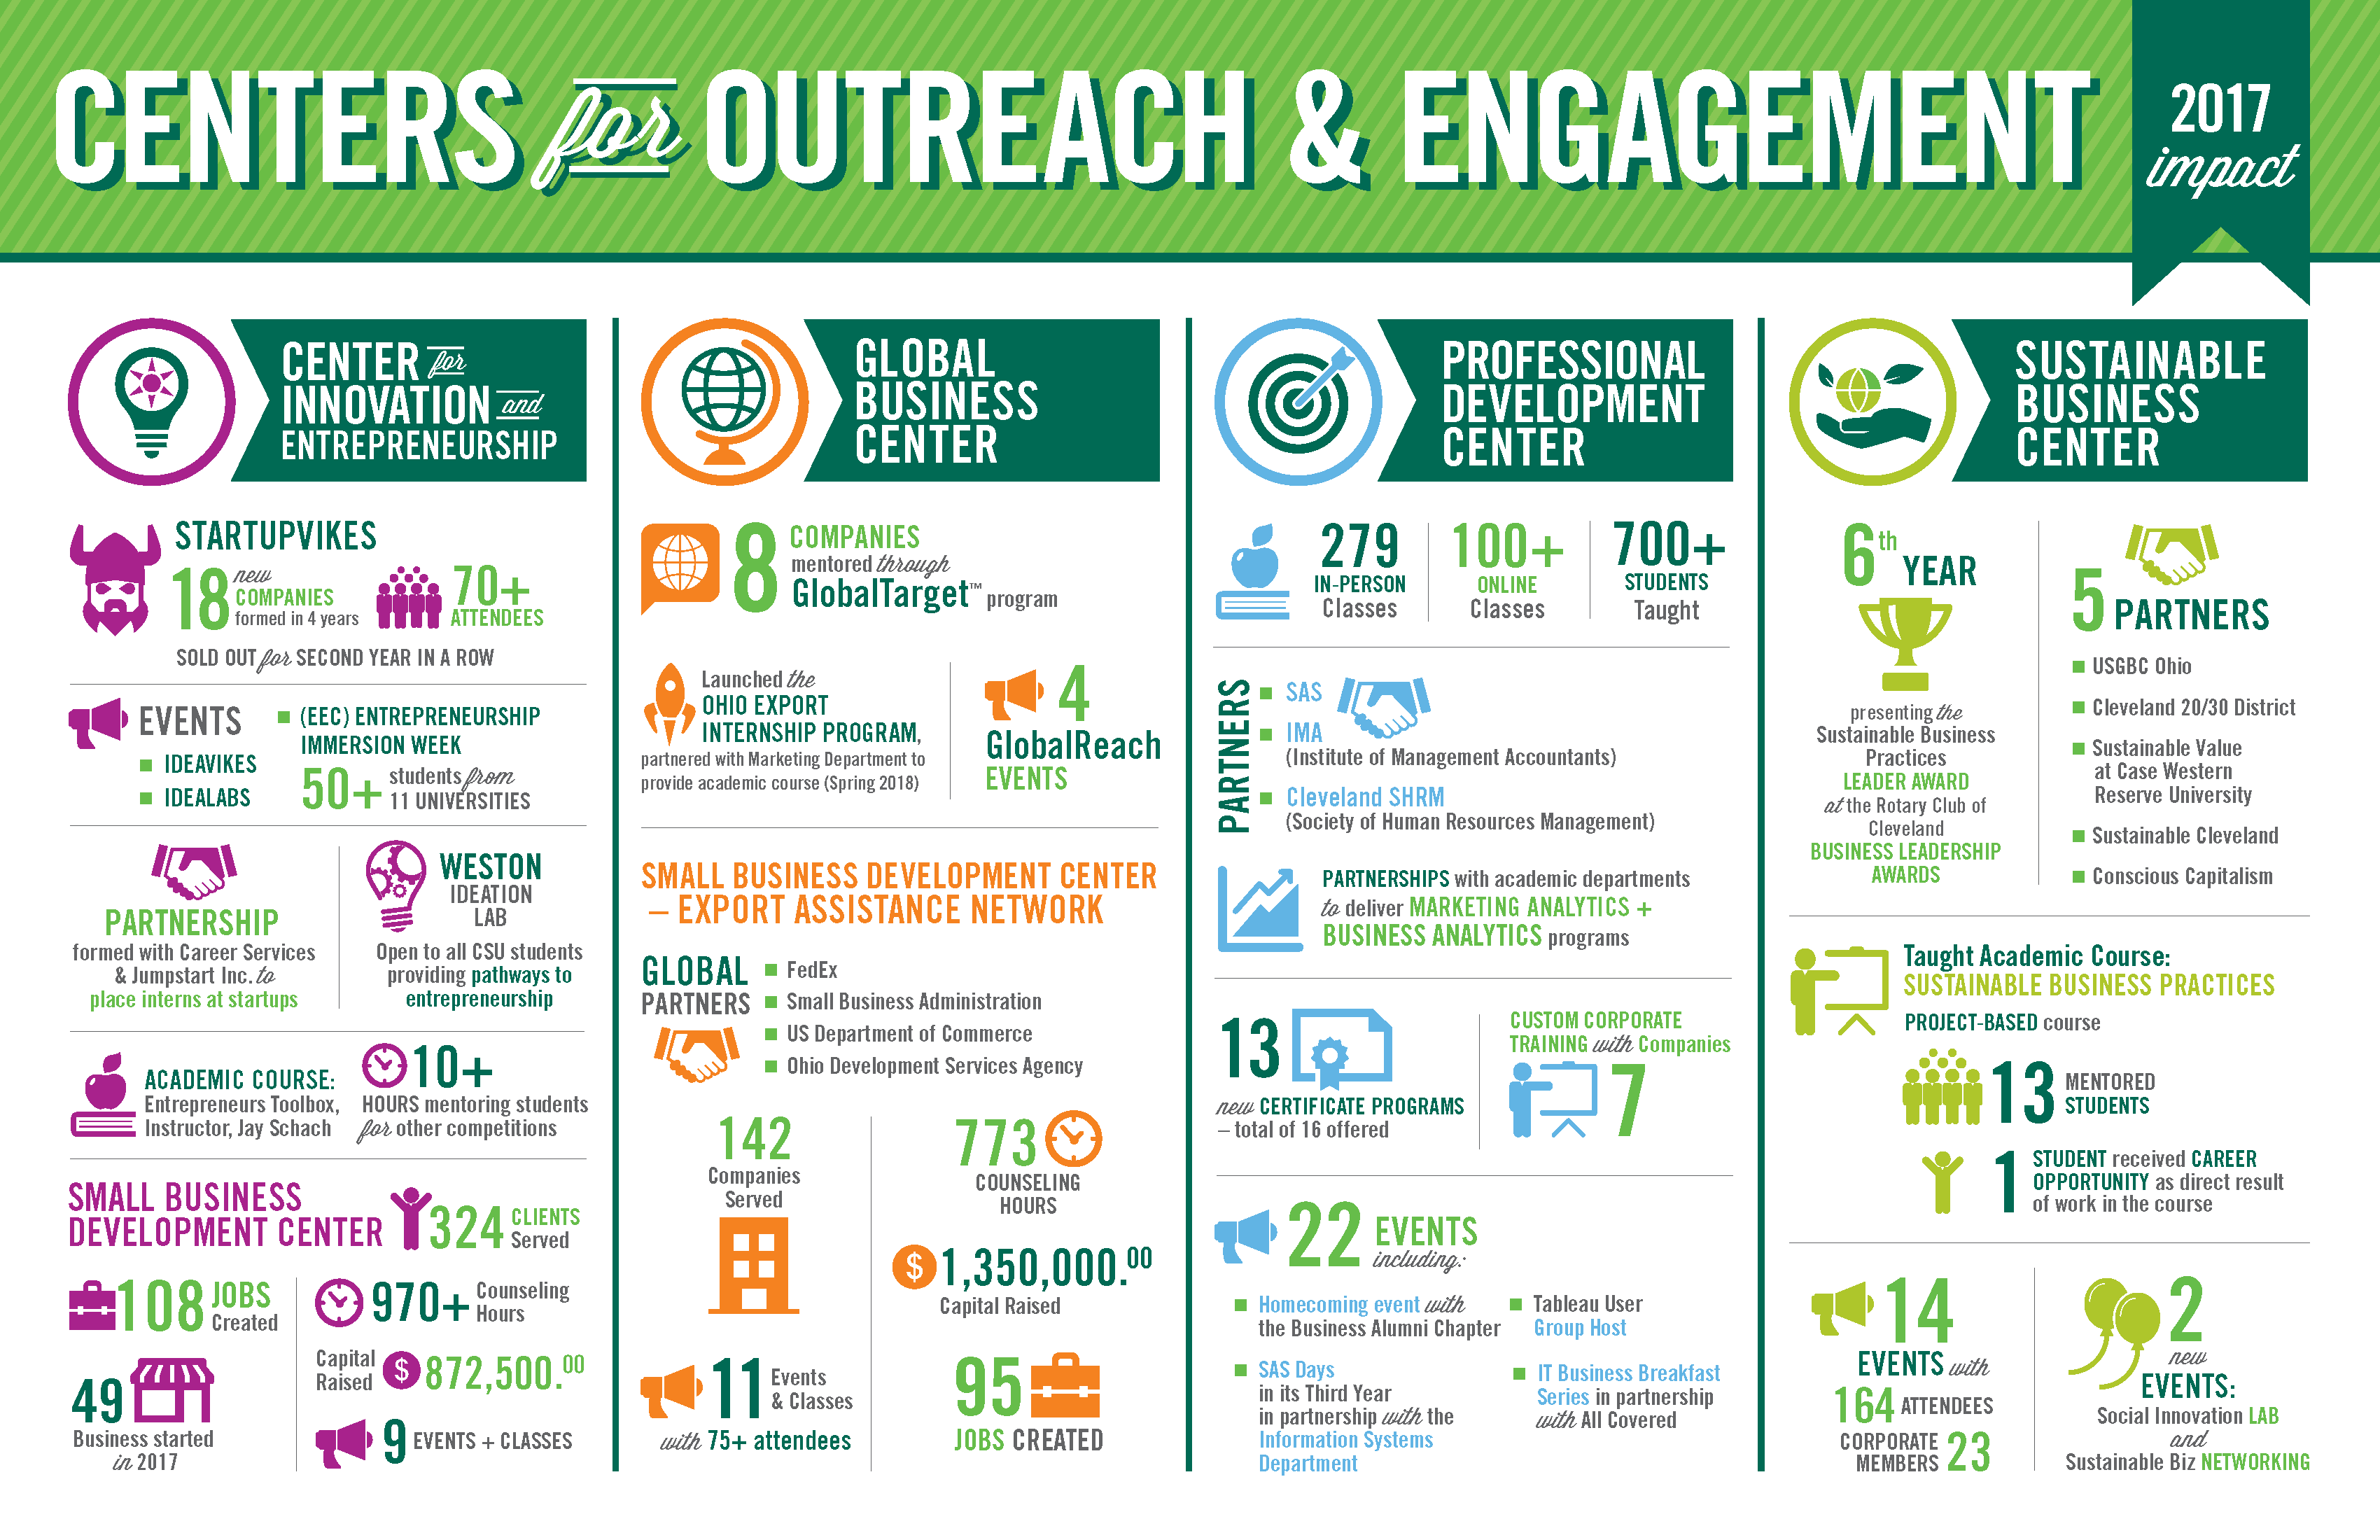 2017 Impact - Centers for Outreach and Engagement